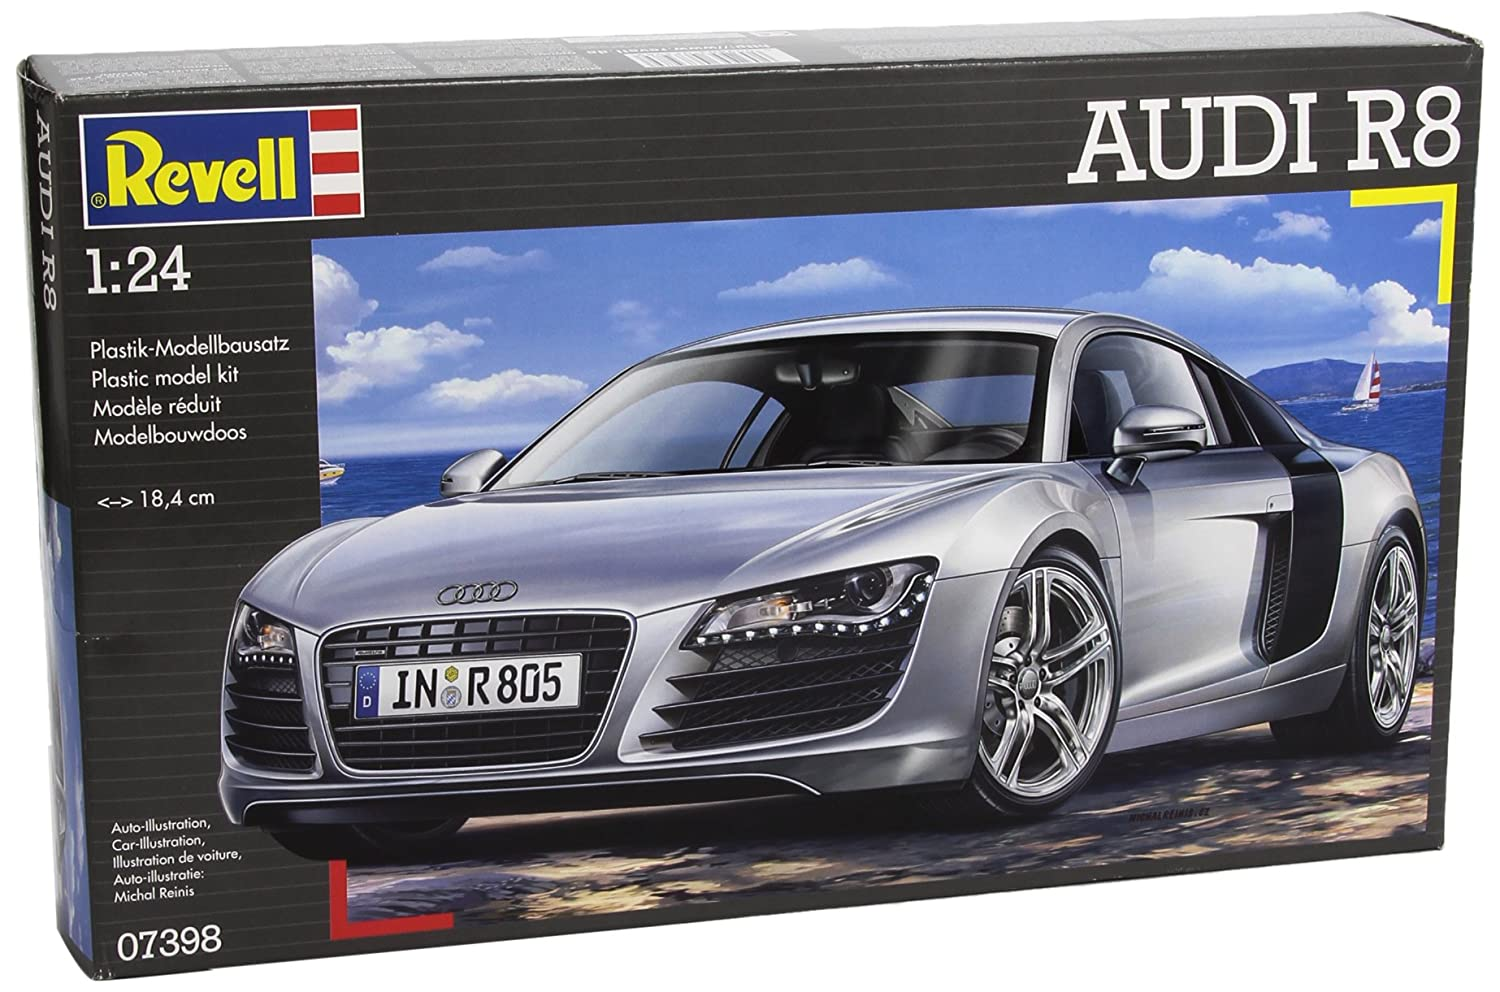 revell 7398 maquette de voiture audi r8 ebay. Black Bedroom Furniture Sets. Home Design Ideas